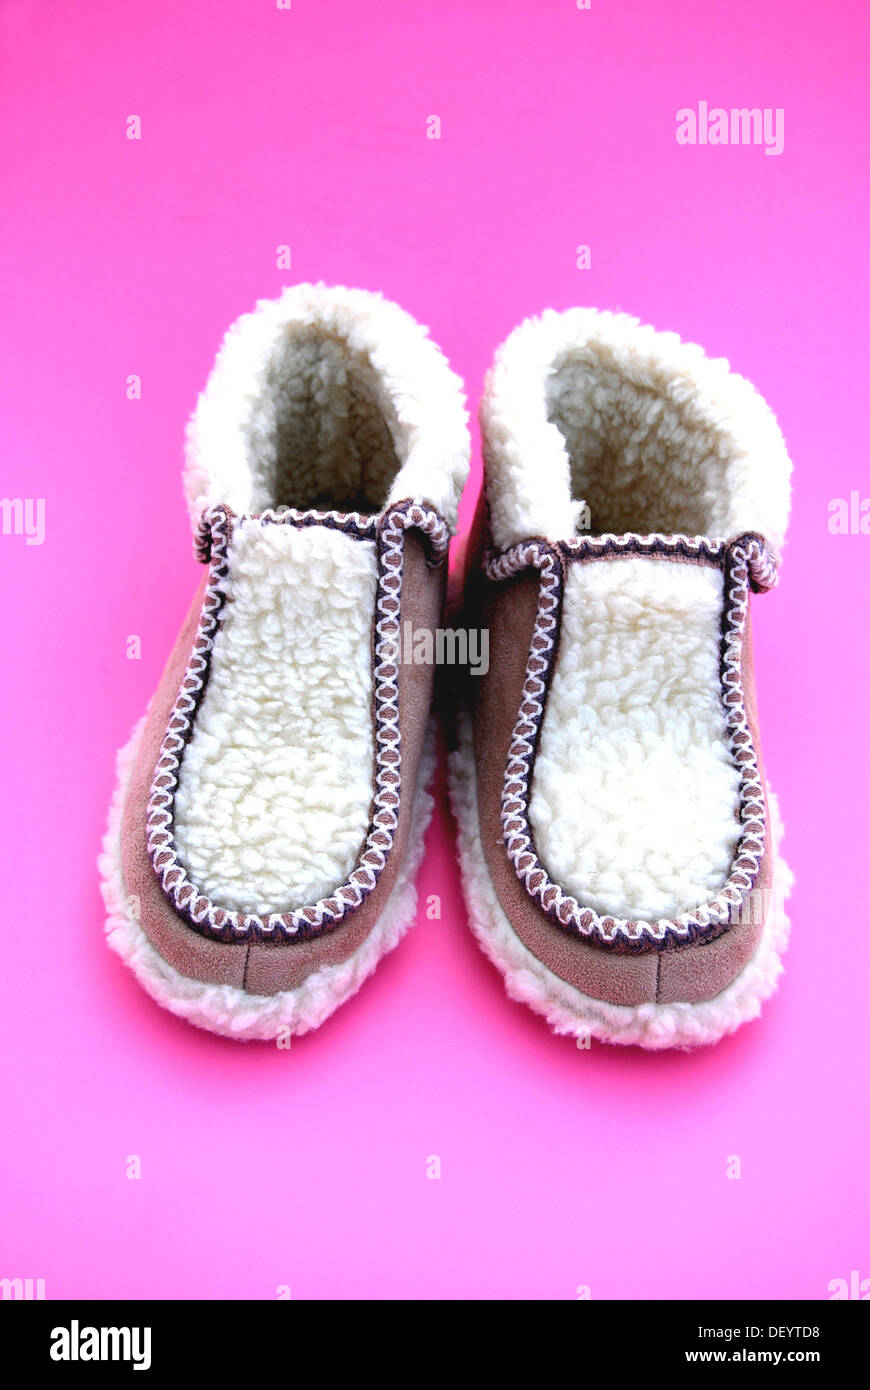 Warm house shoes made of sheep's wool - Stock Image